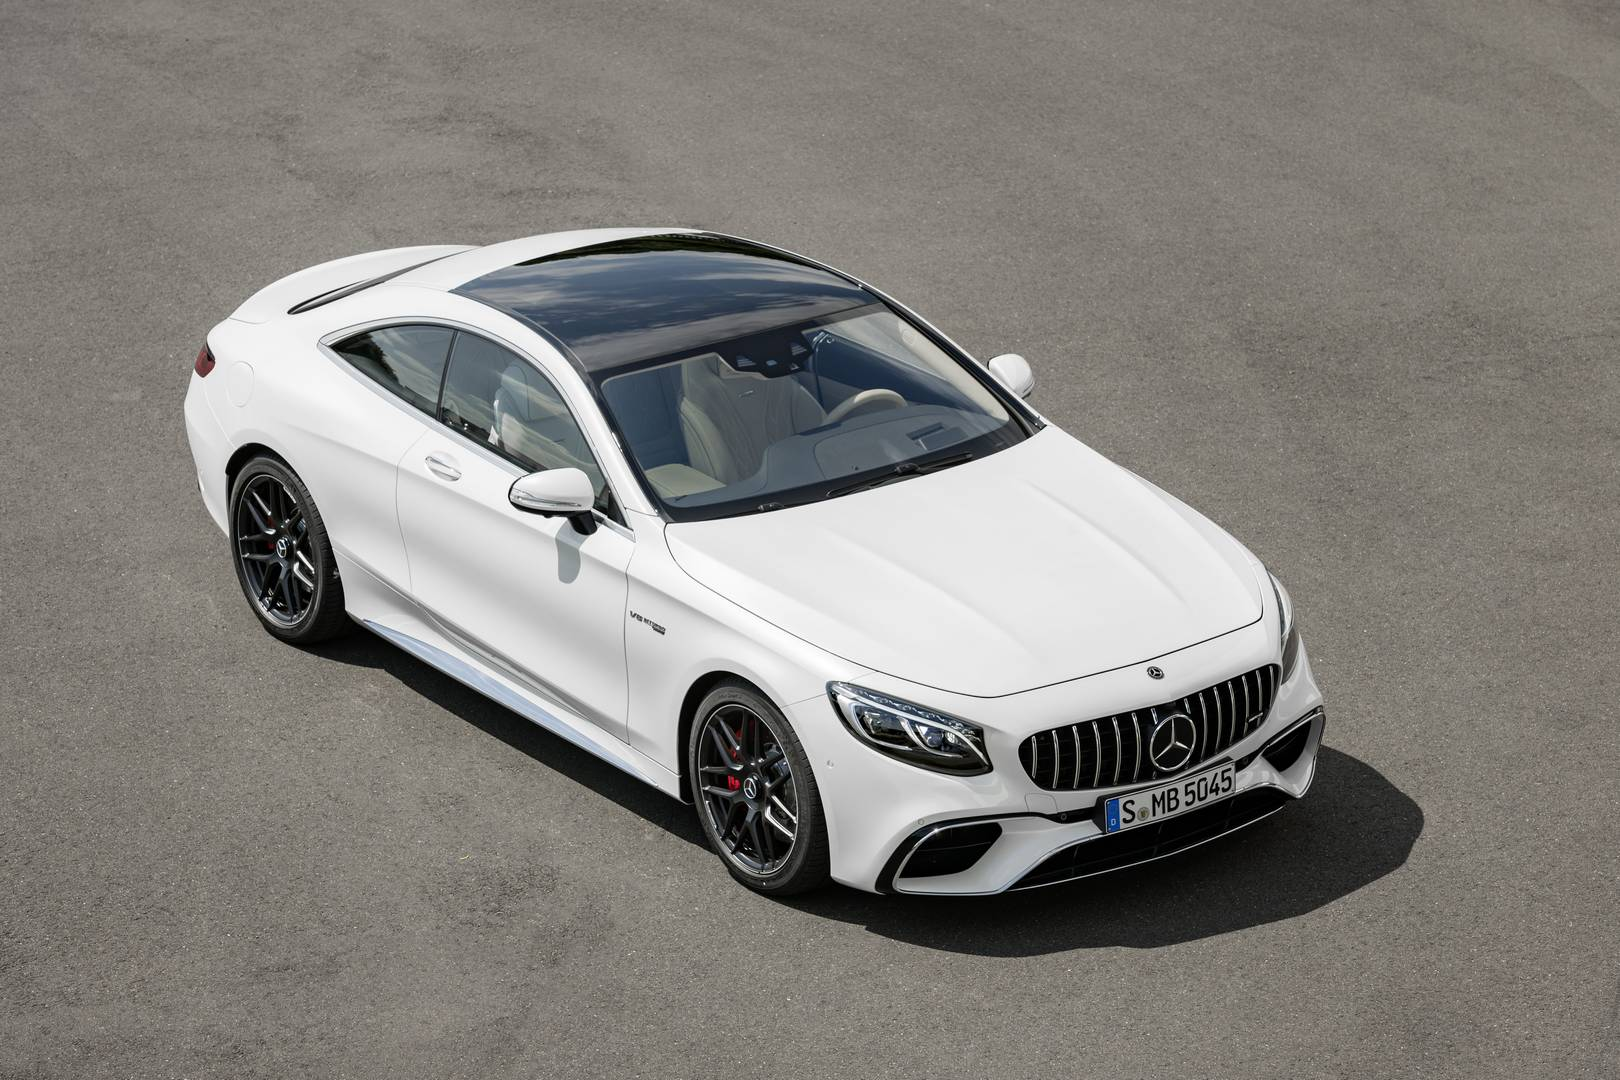 official 2018 mercedes amg s63 and s65 coupe cabriolet. Black Bedroom Furniture Sets. Home Design Ideas